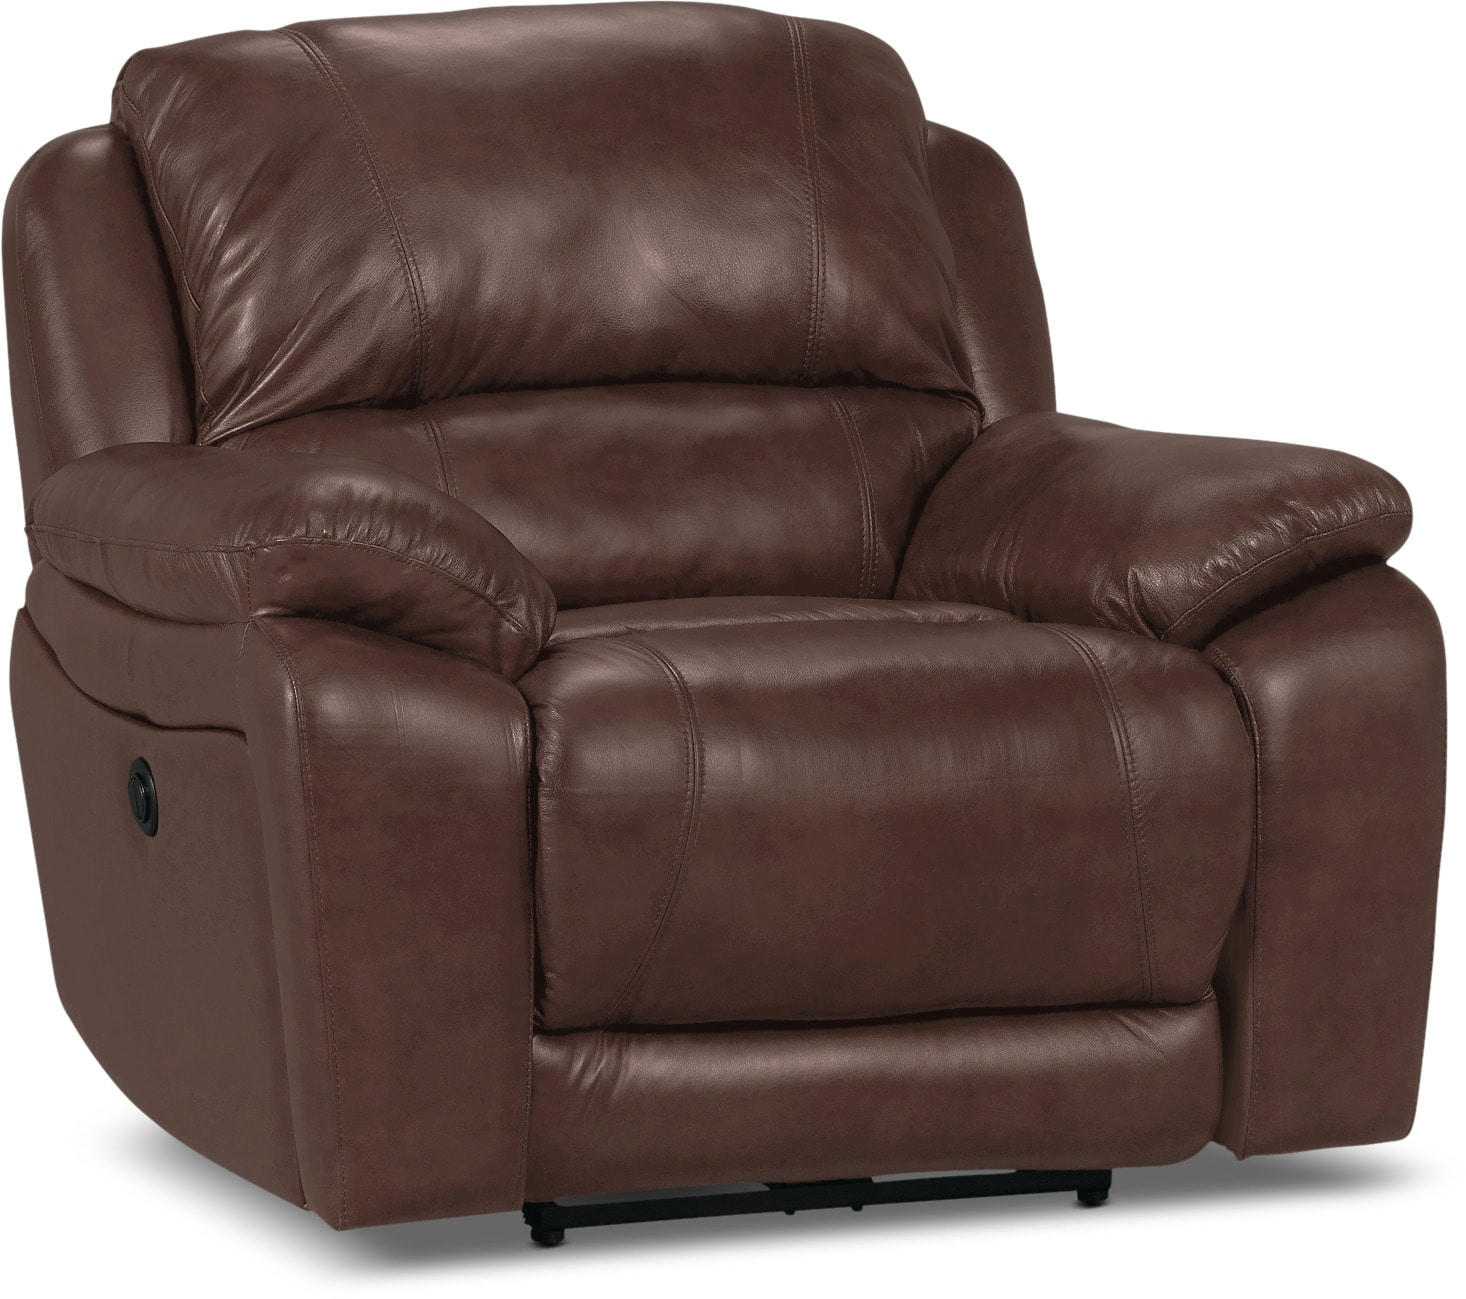 Living Room Furniture - Marco Genuine Leather Power Recliner - Chocolate